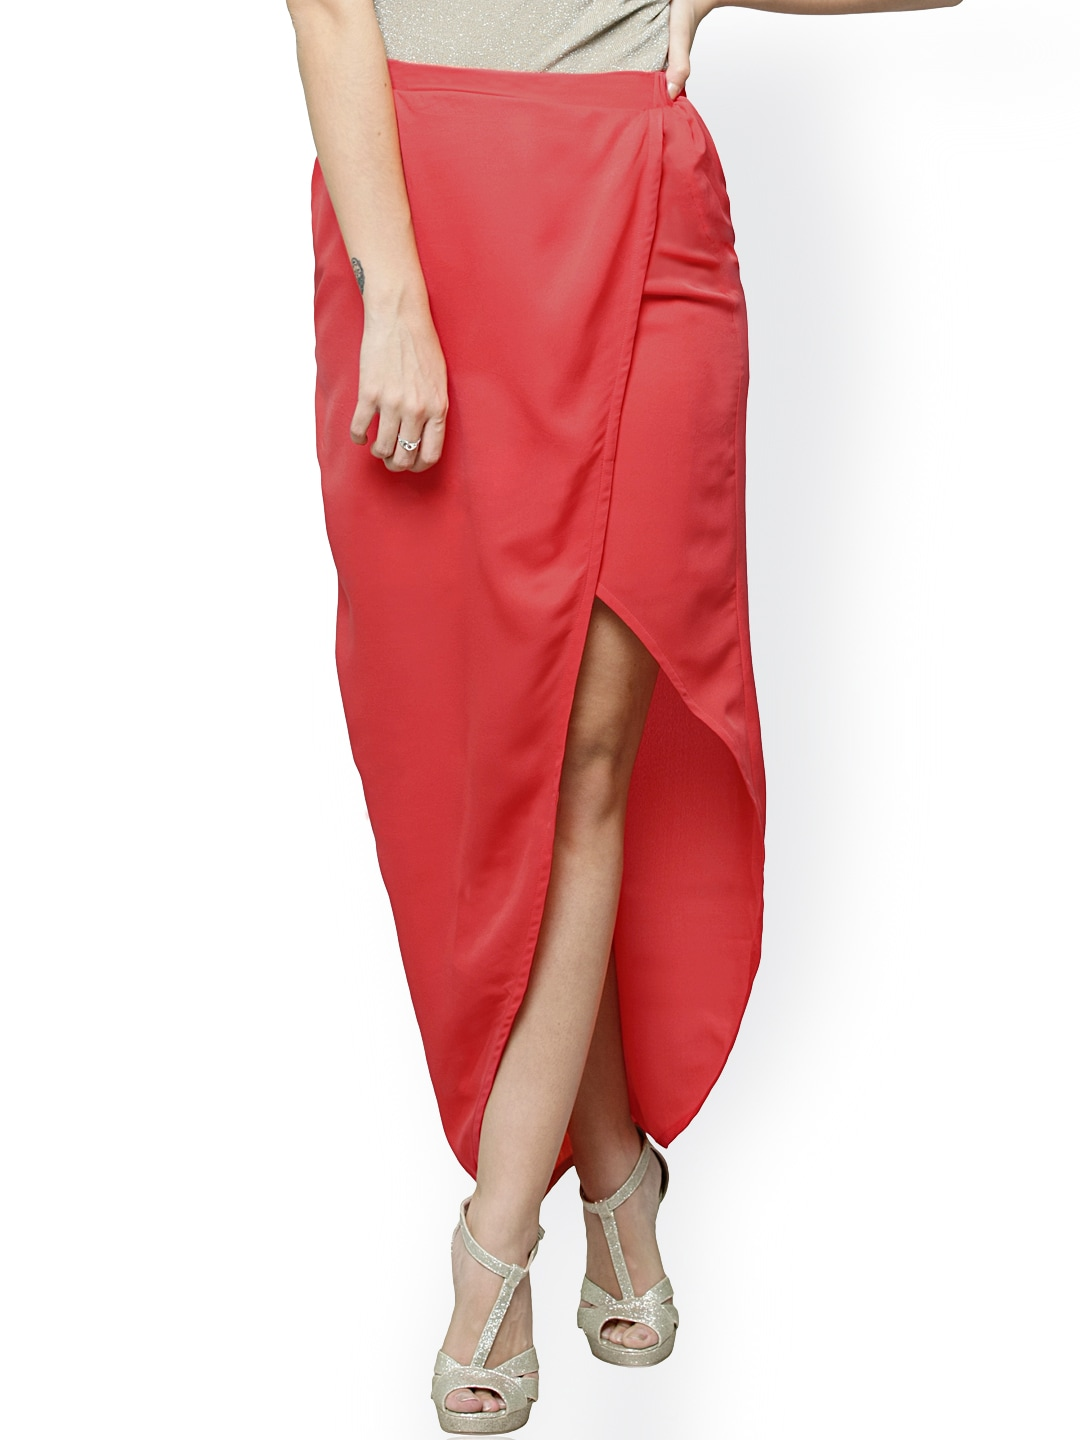 Miss Chase Coral Red High-Low Skirt